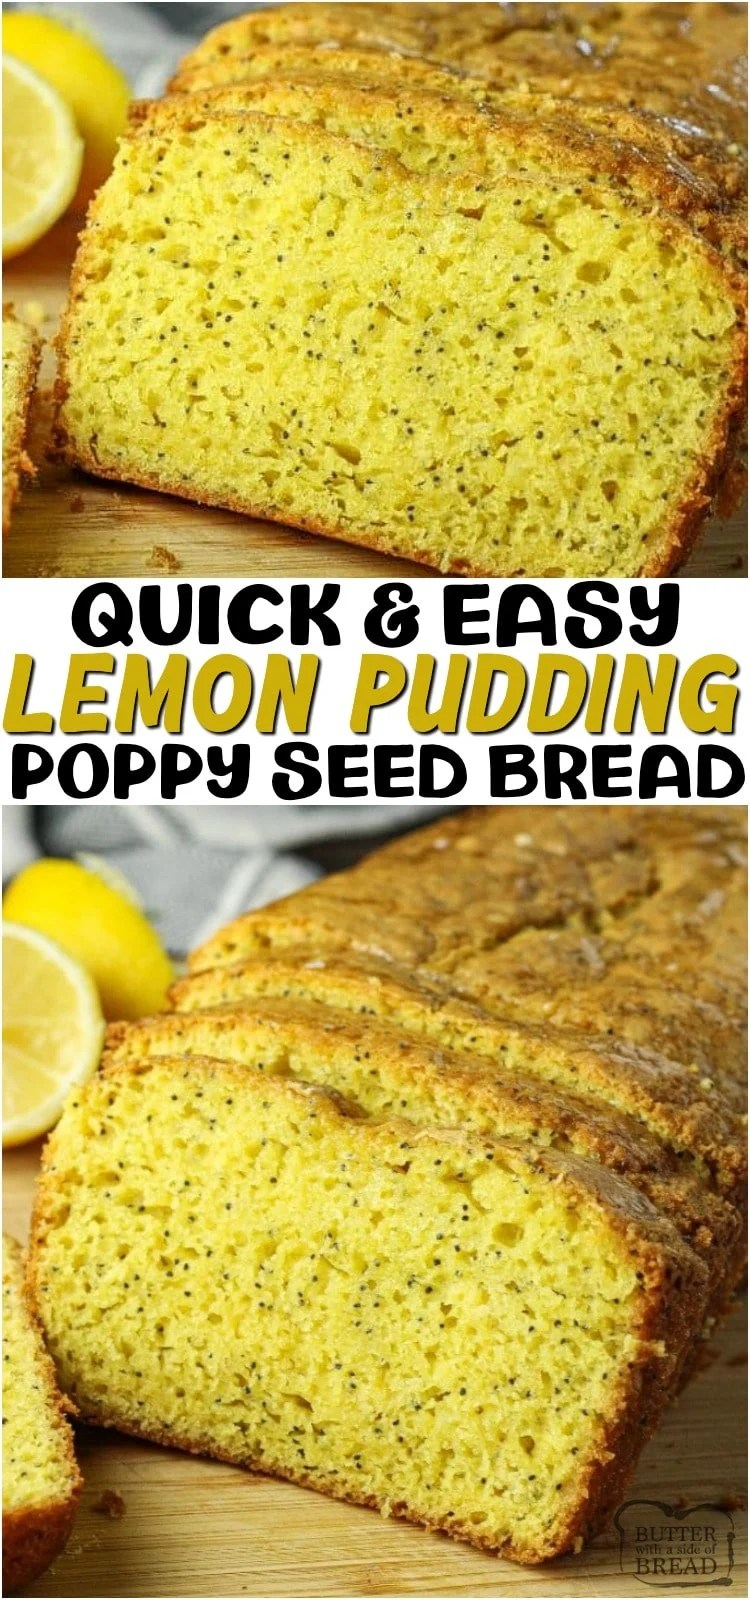 Easy Lemon Poppy Seed Bread is a simple, sweet bread recipe that is made with just a few ingredients. Using a cake mix and lemon pudding, makes this bread come together fast. This simple quick bread recipe will be one you will want to make over and over again.